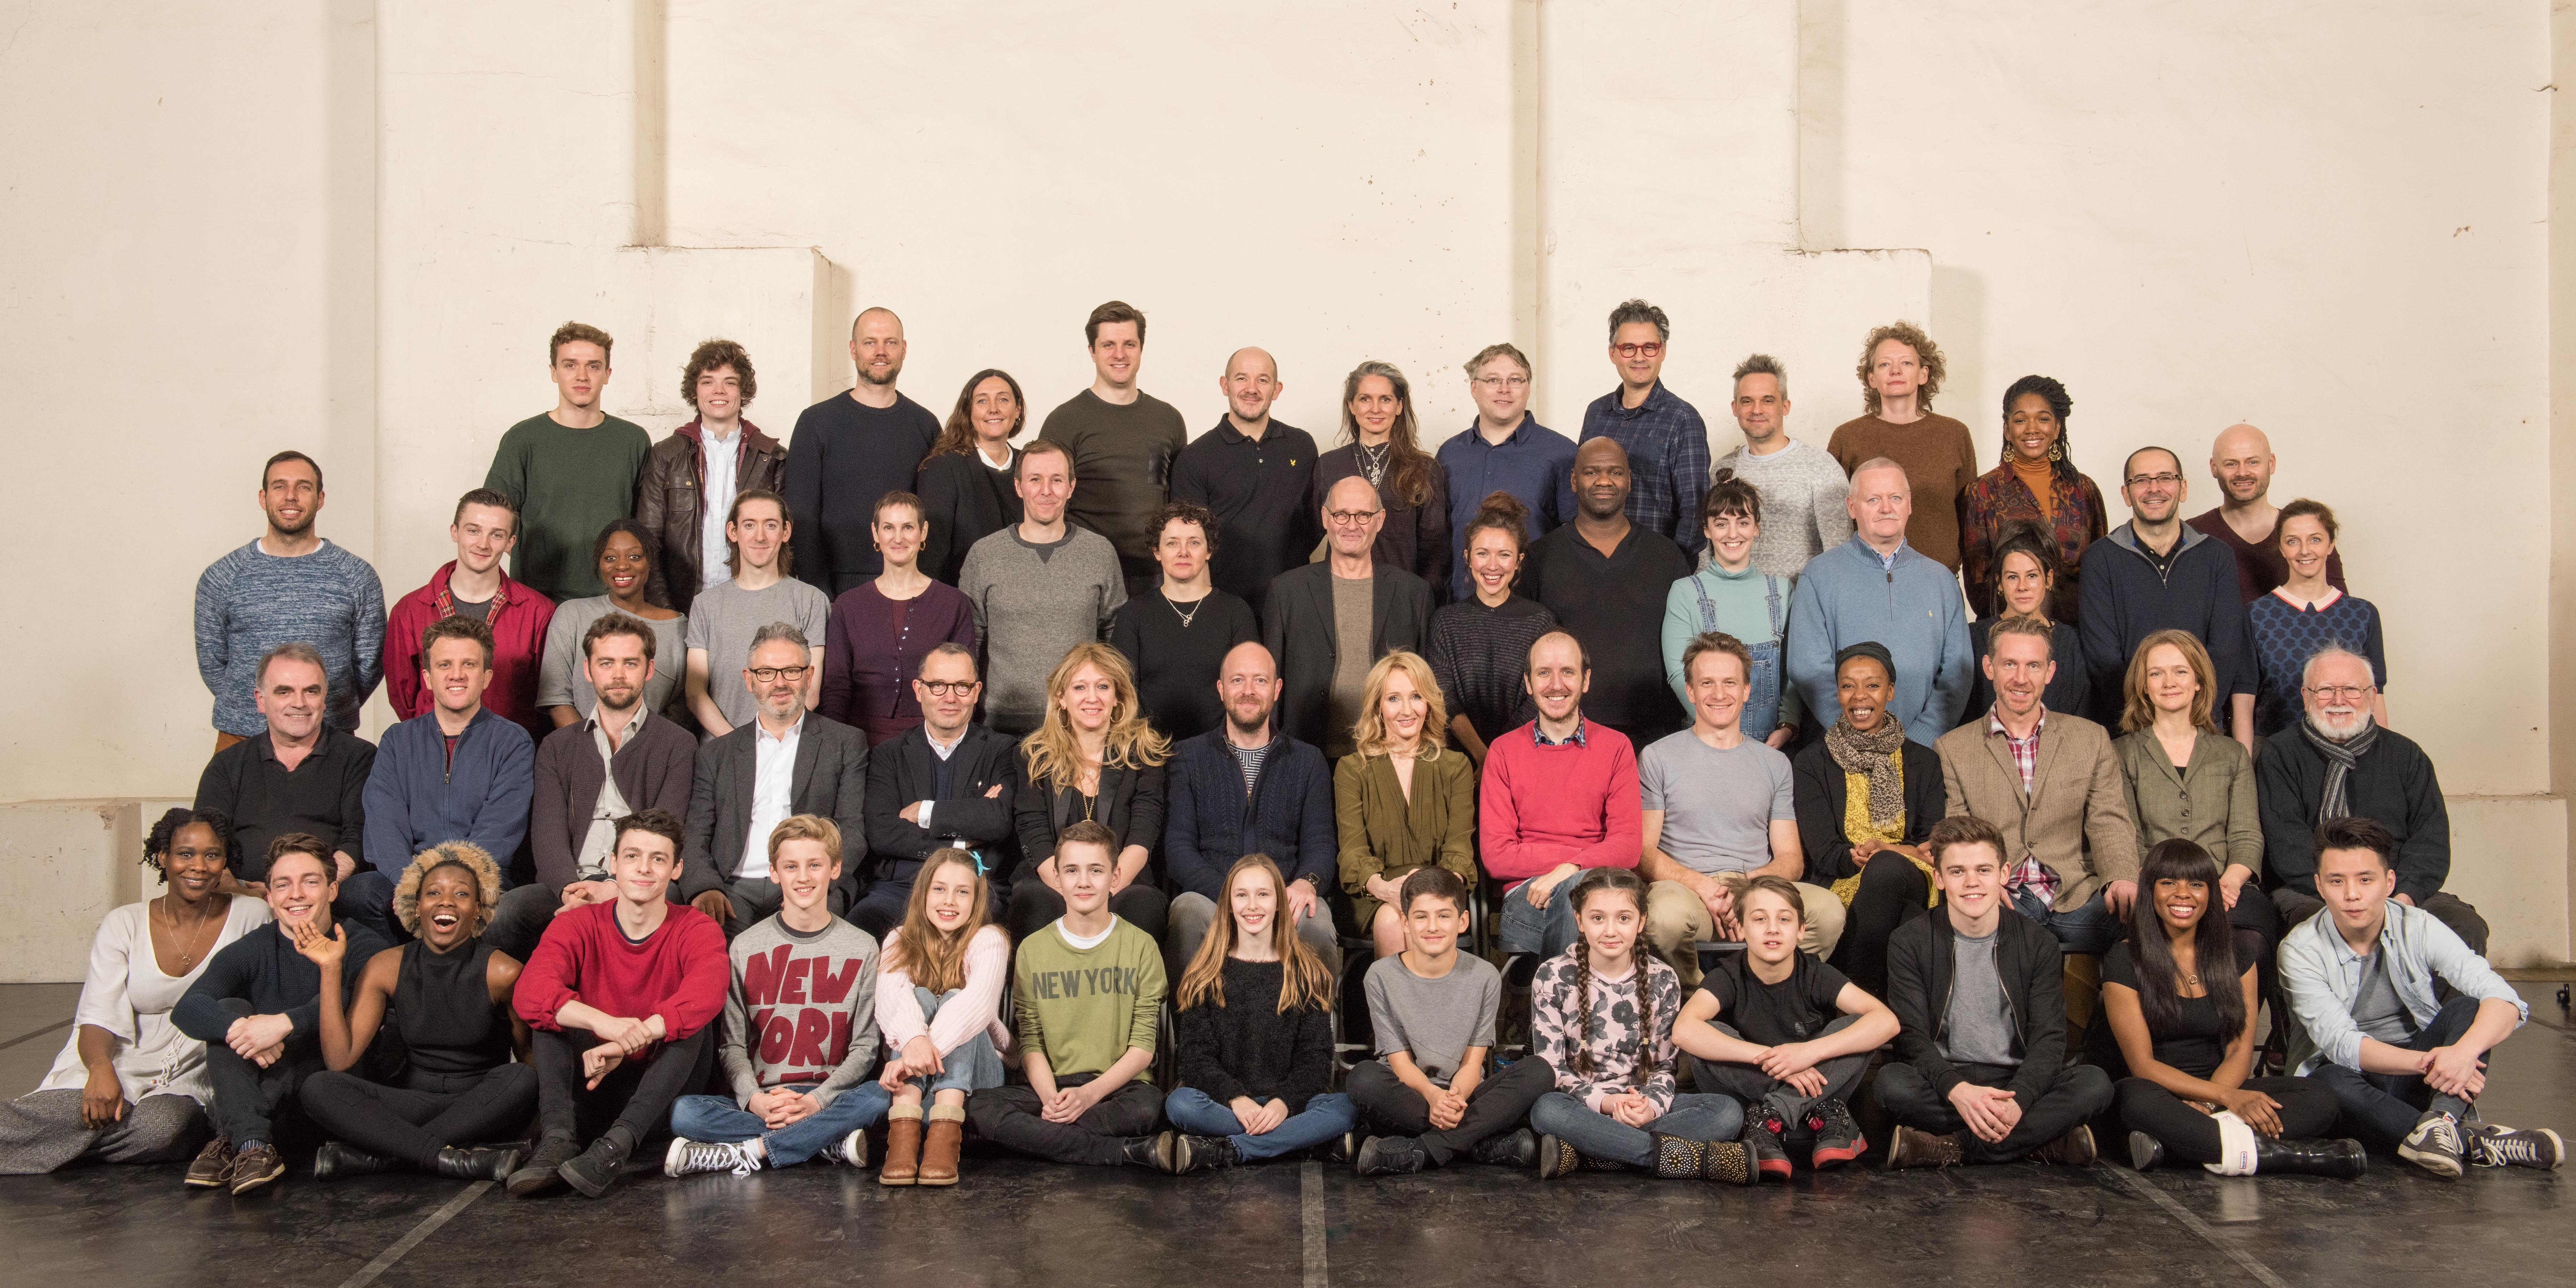 Harry Potter and the Cursed Child cast photo